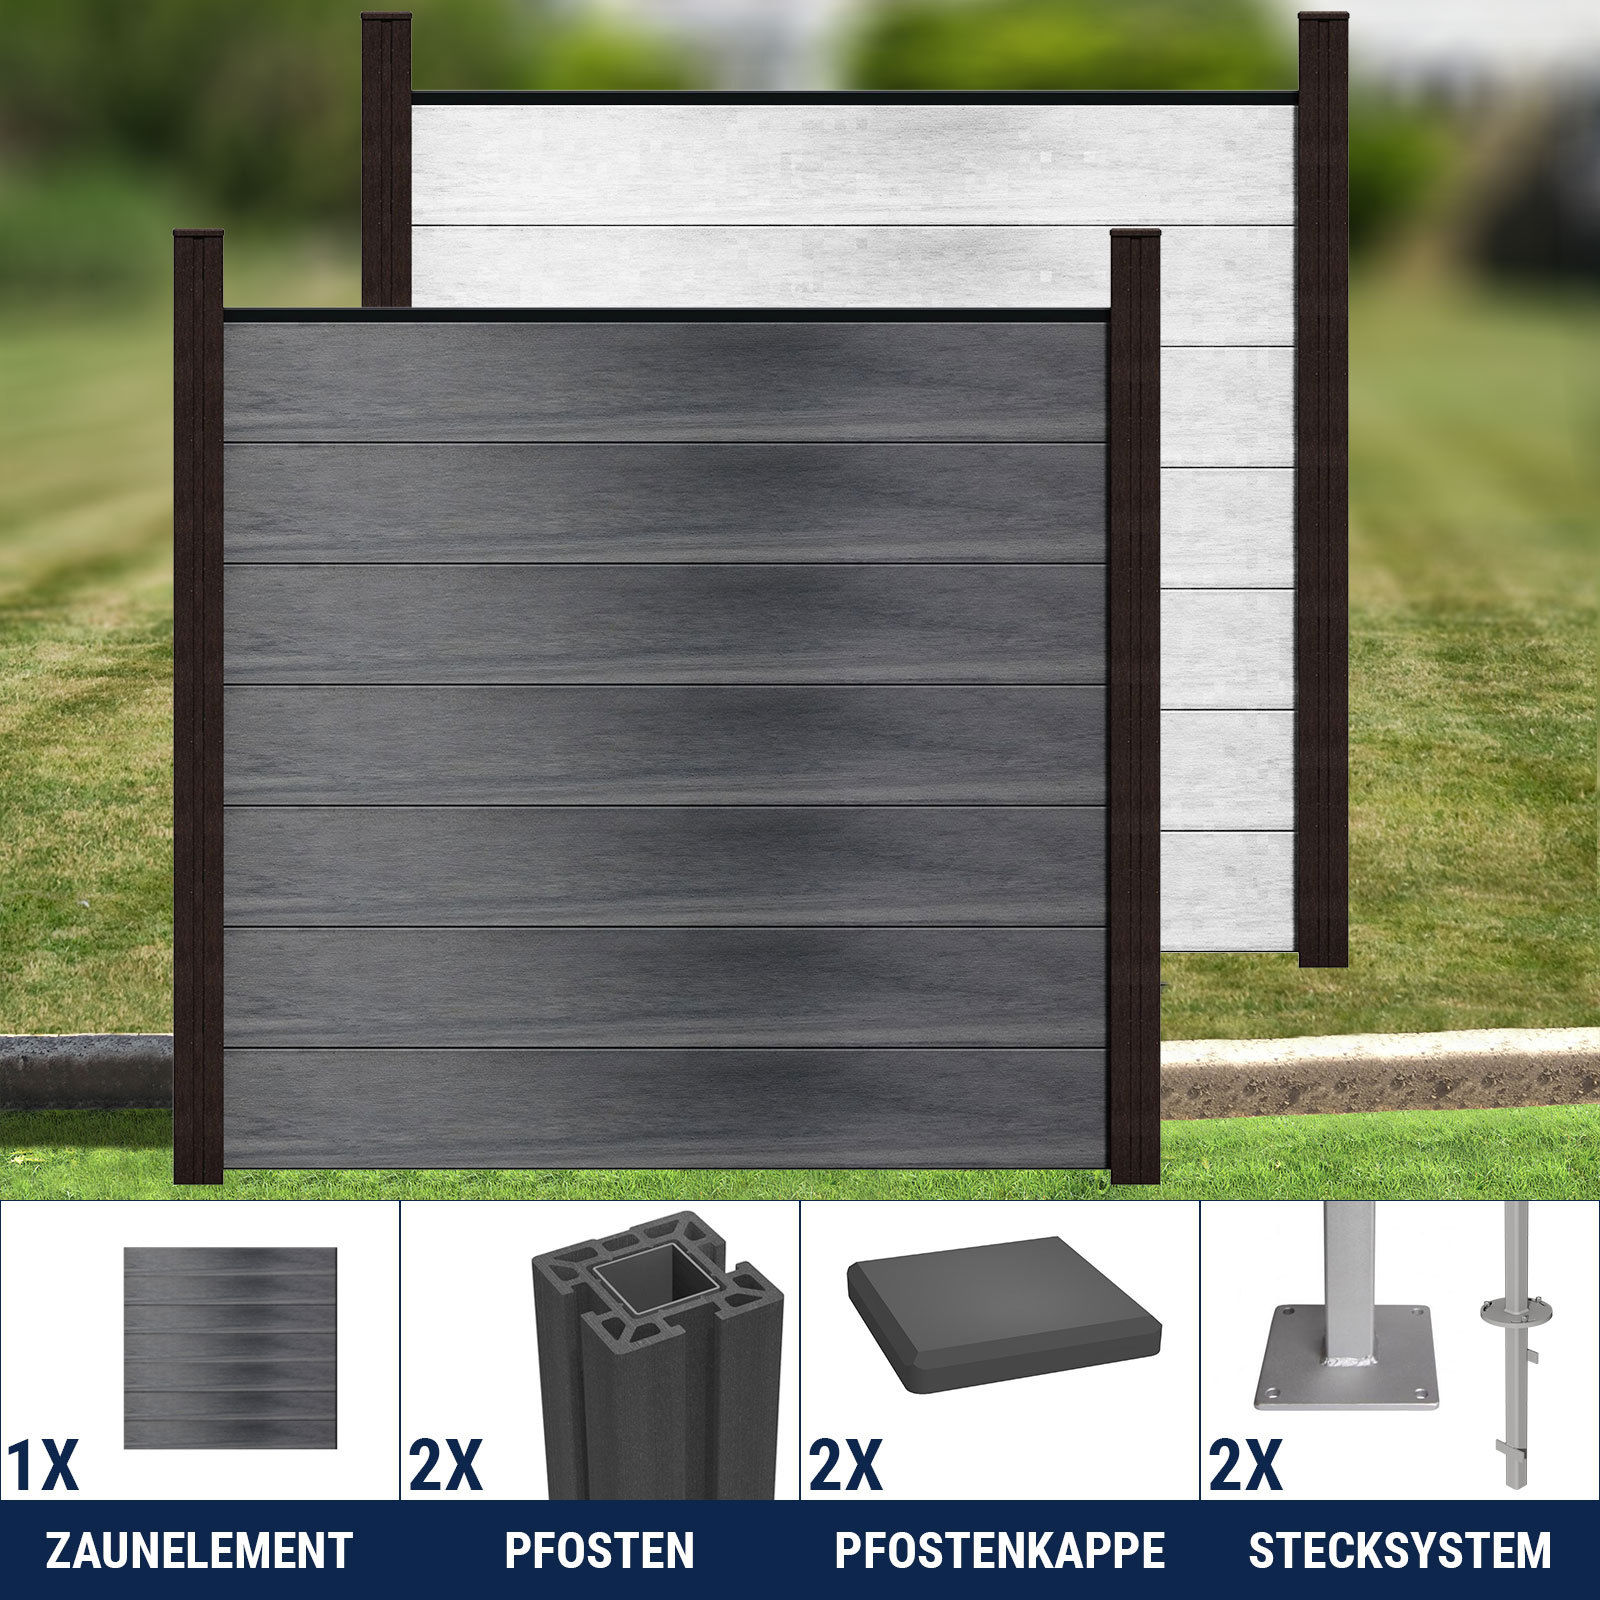 groja wpc zaun sichtschutz gartenzaun windschutzzaun terrasse grau 180 x 180 ebay. Black Bedroom Furniture Sets. Home Design Ideas